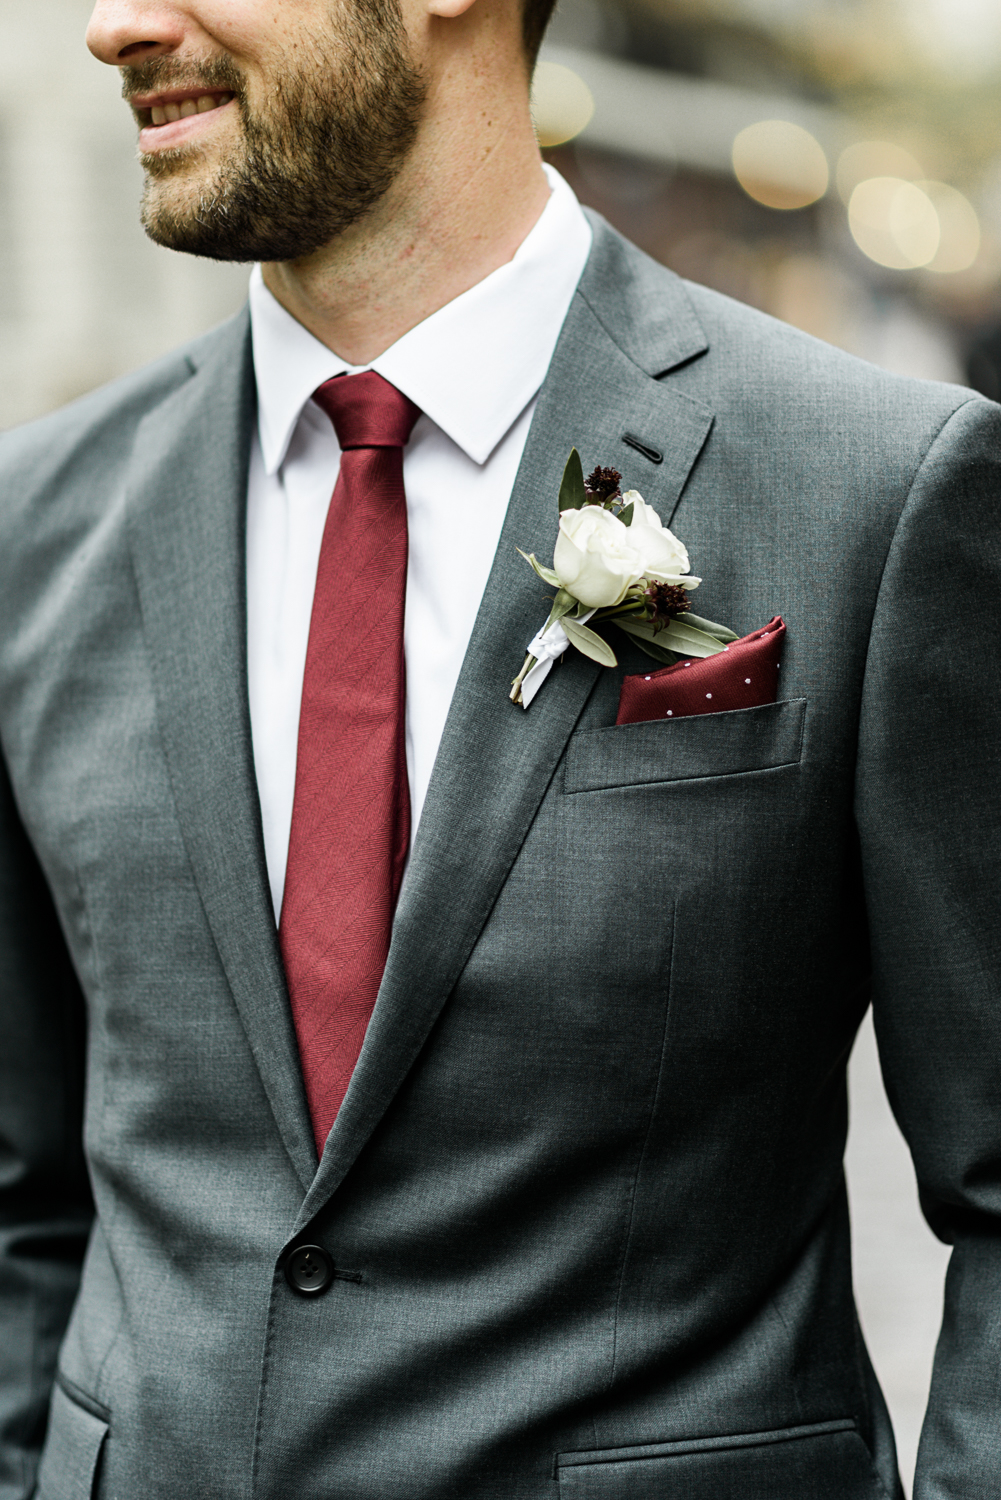 groom wearing custom charcoal suit with a burgundy tie and pocket square